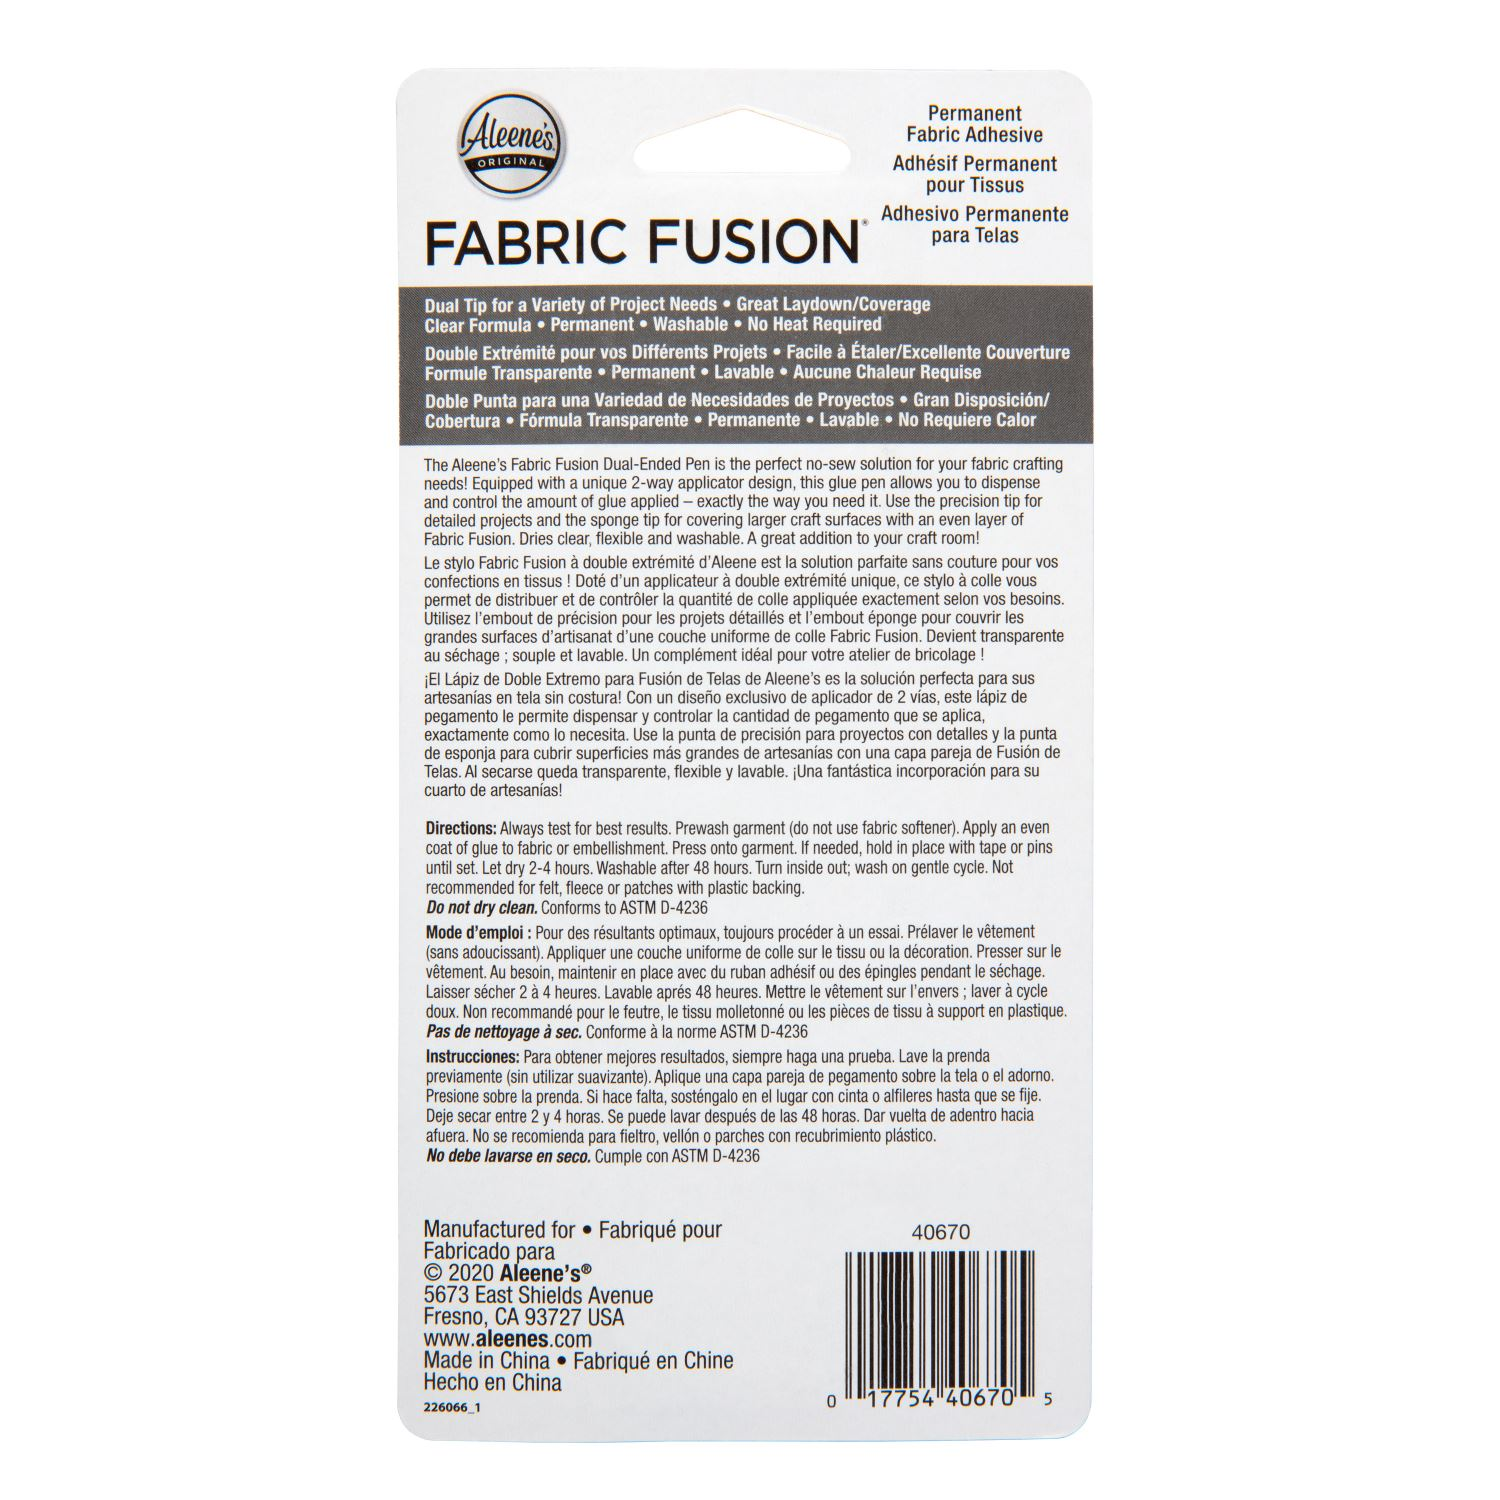 Picture of Fabric Fusion® Dual-Ended Pen